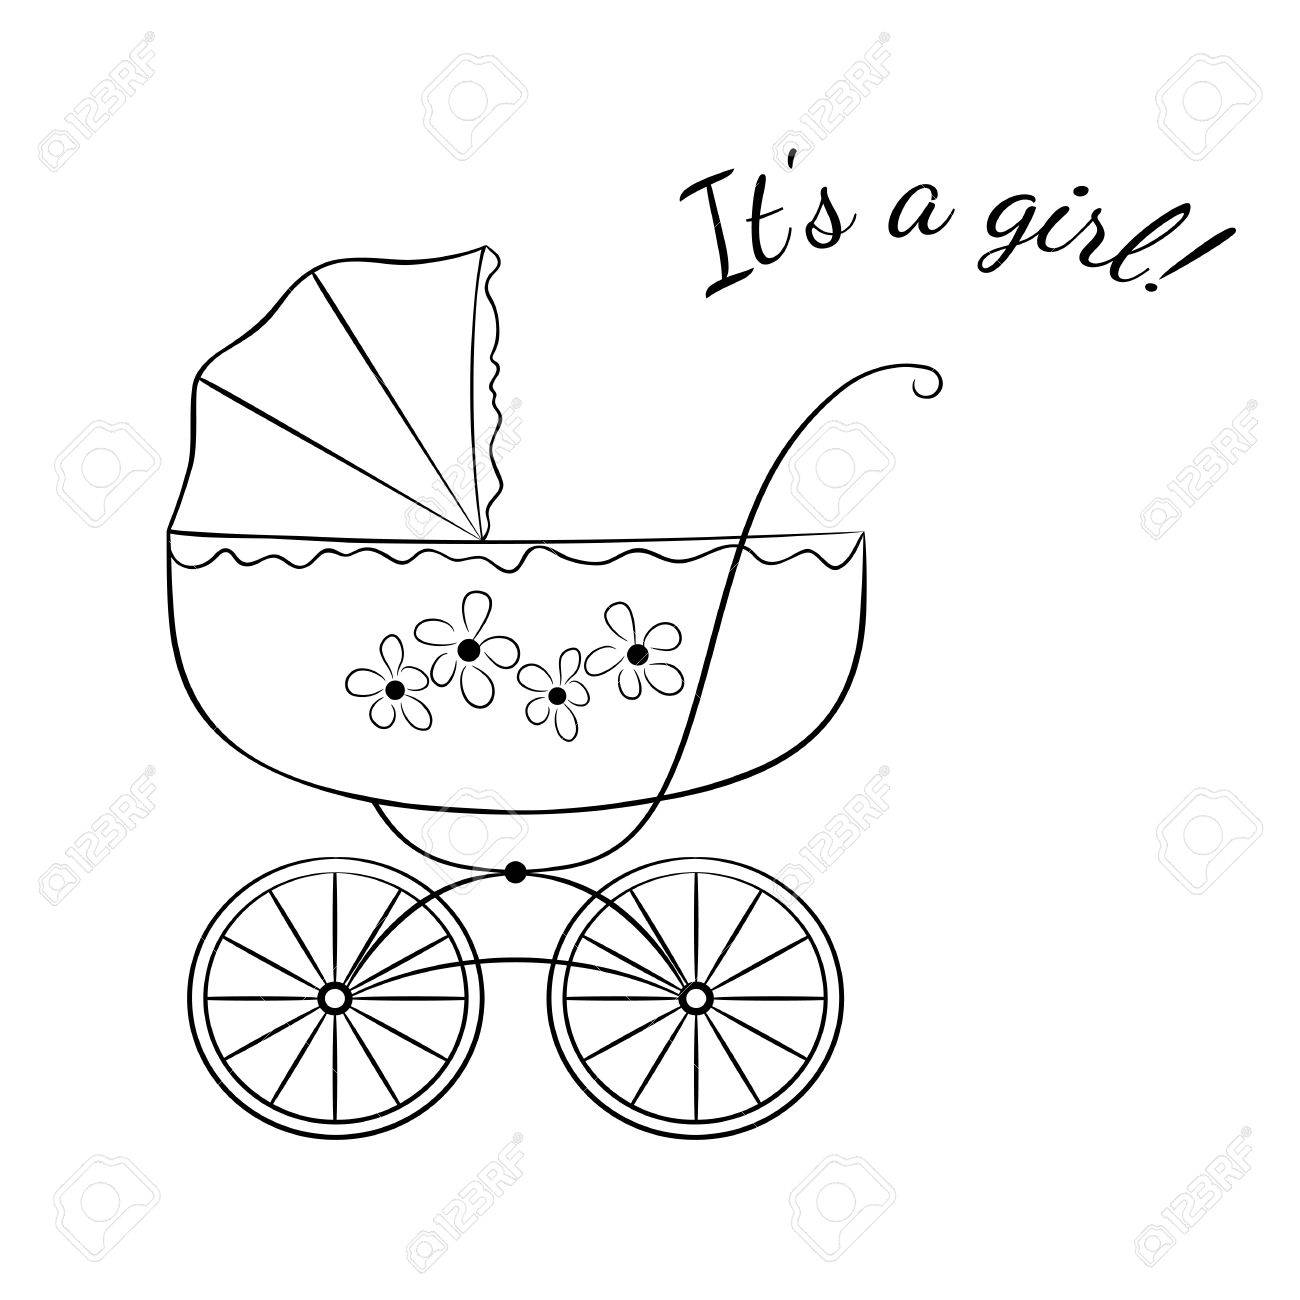 sketch like image of a retro baby carriage variant for a girl